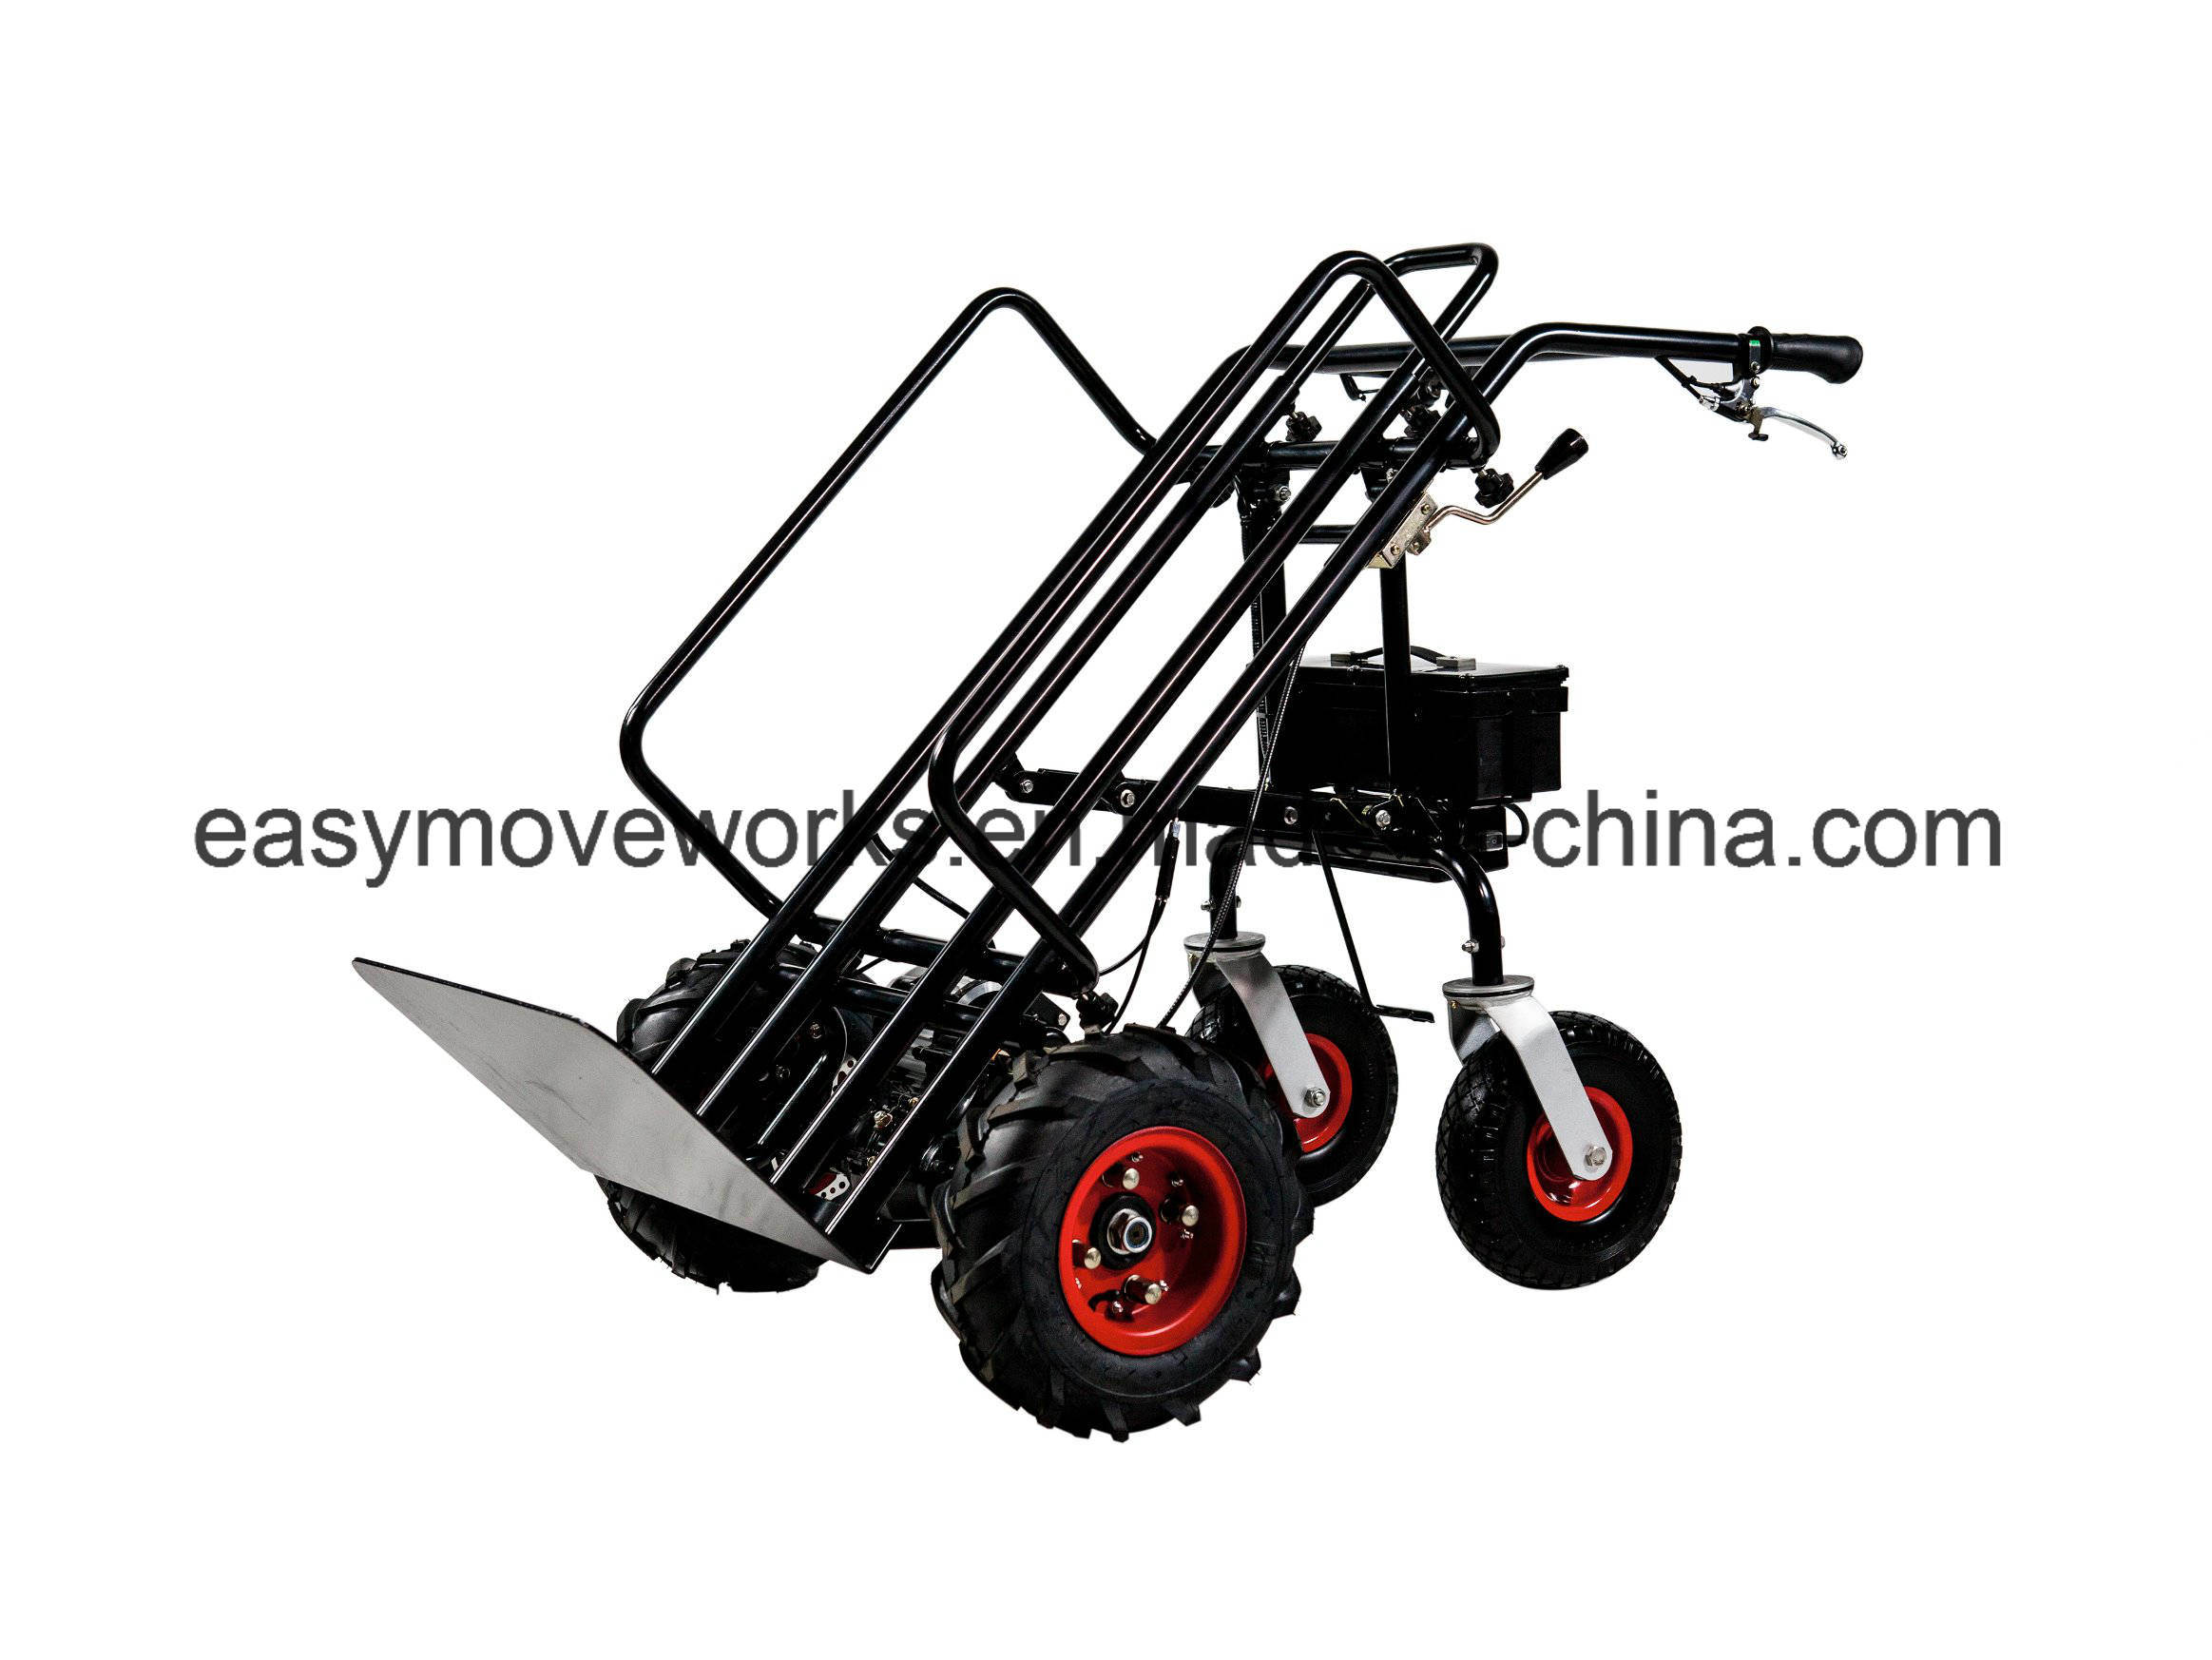 Vertical Fold Pallet Platform Electric Drive Cart Electrical Trolley for Gardening Architecture Warehousing Agriculture